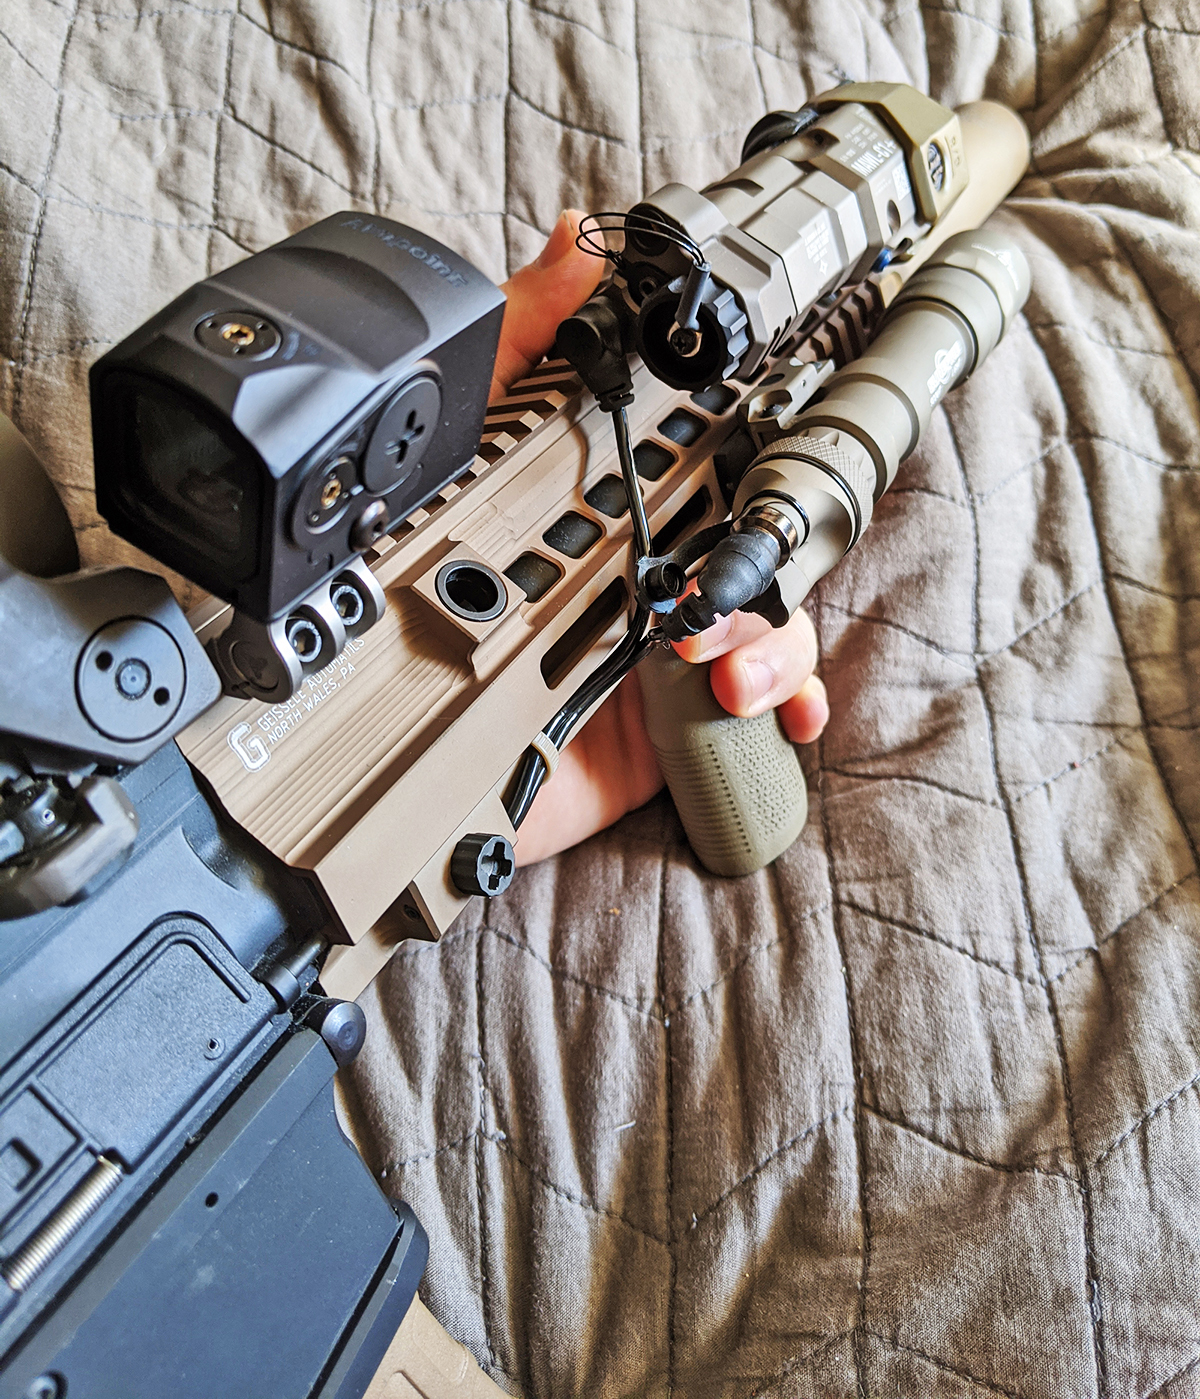 DSOO remote switch assembly mounted to DARC-informed HK416 rails with optics, Surefire light, and MAWL.